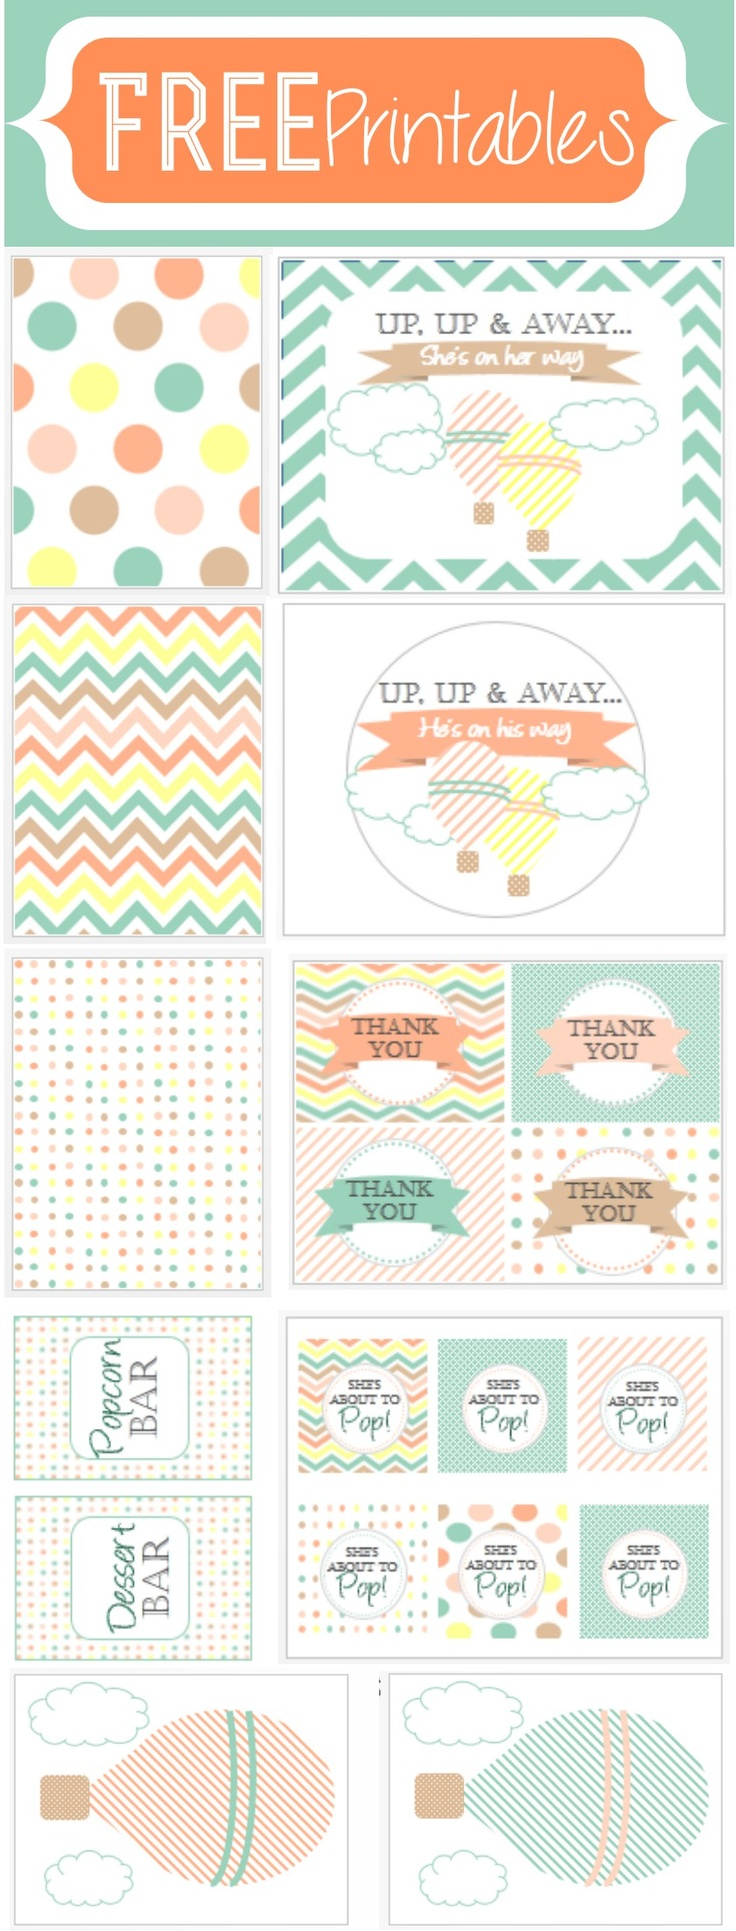 free printables - hot air balloon shower